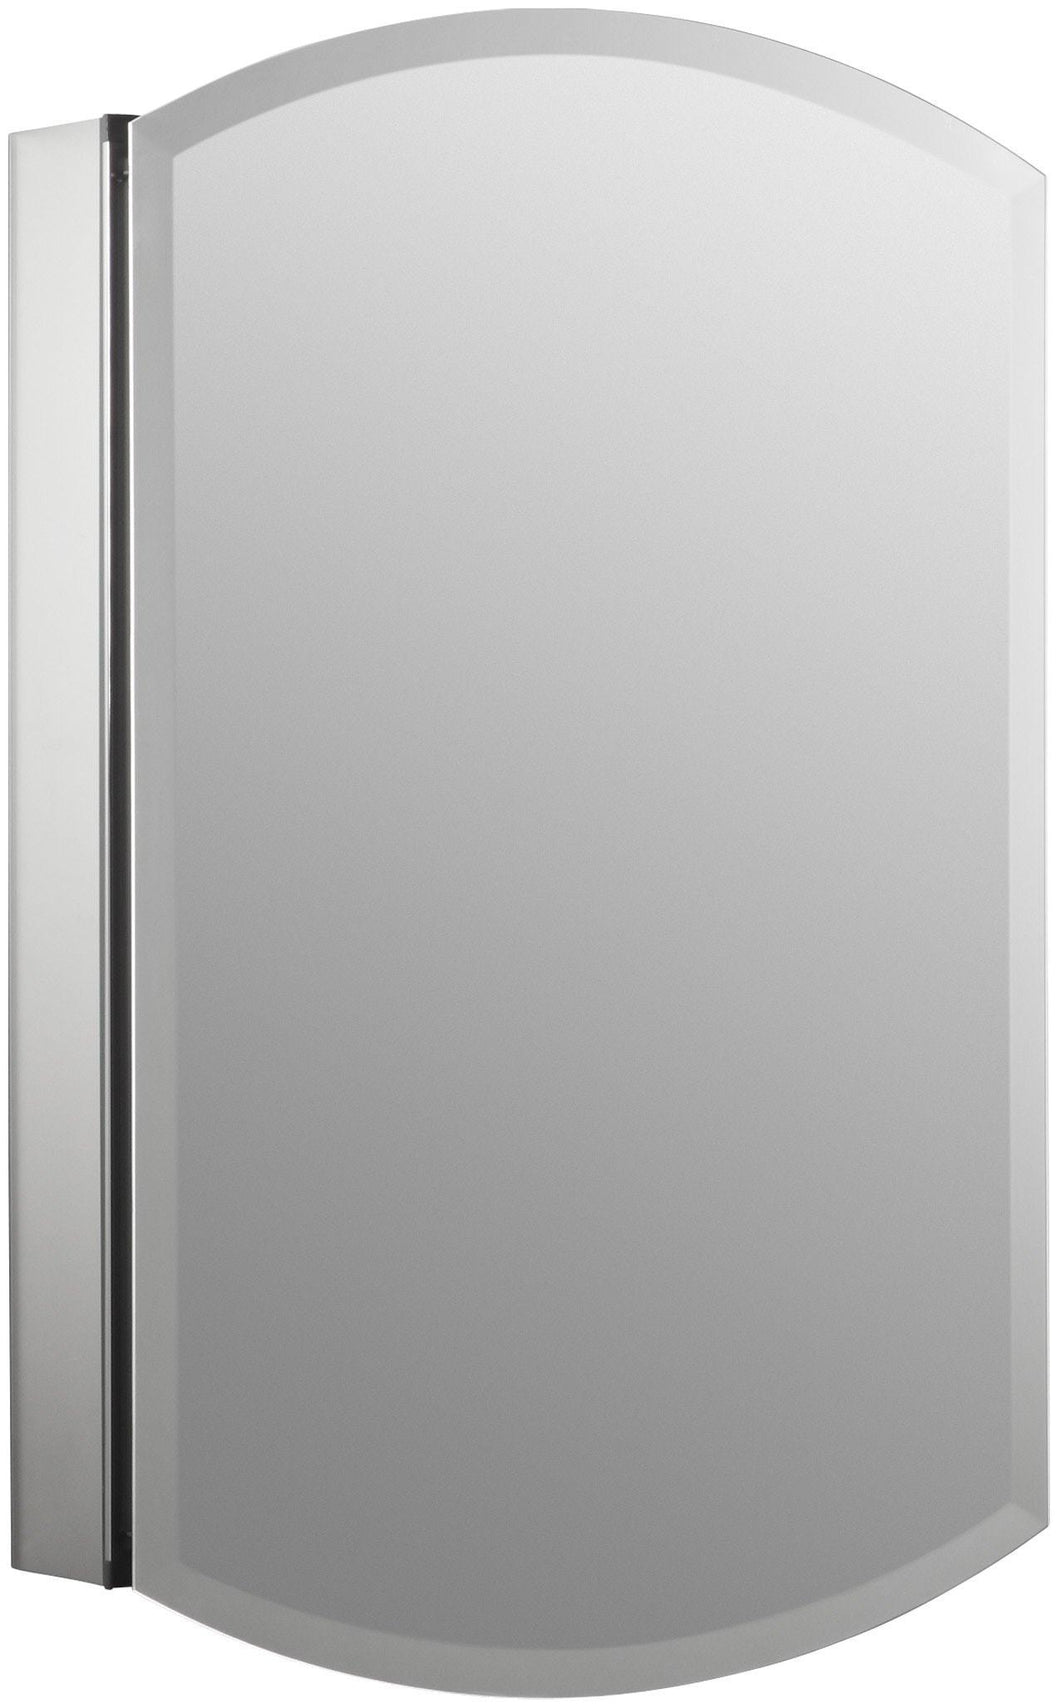 Related kohler k 3073 na archer frameless 20 inch x 31 inch aluminum bathroom medicine cabinet recess or surface mount